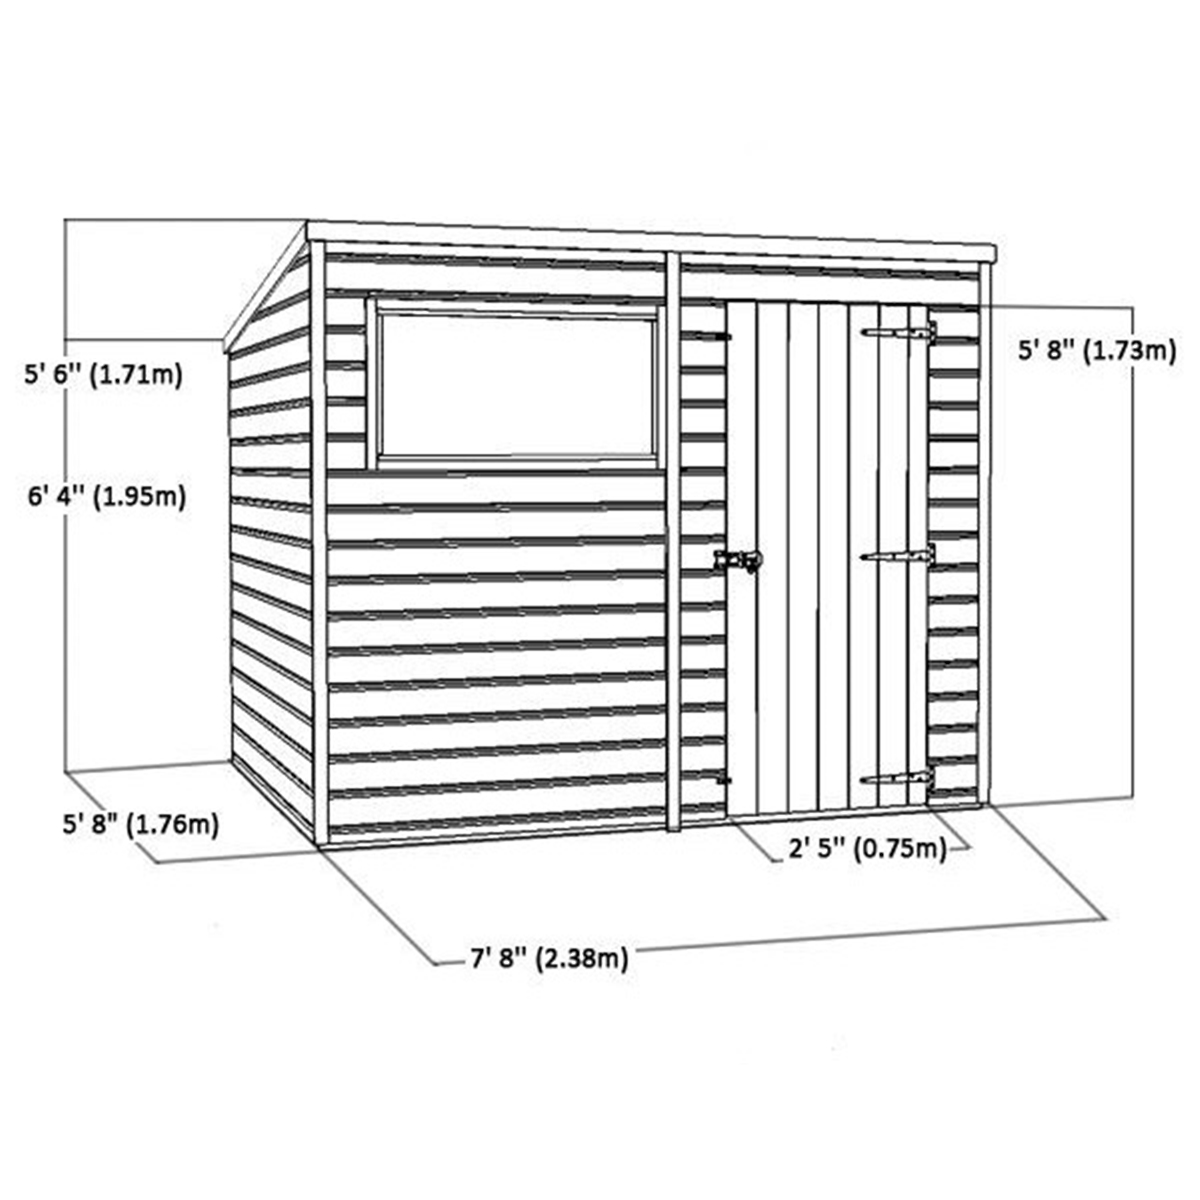 Samuel osb thickness for shed roof for Roof sheathing thickness